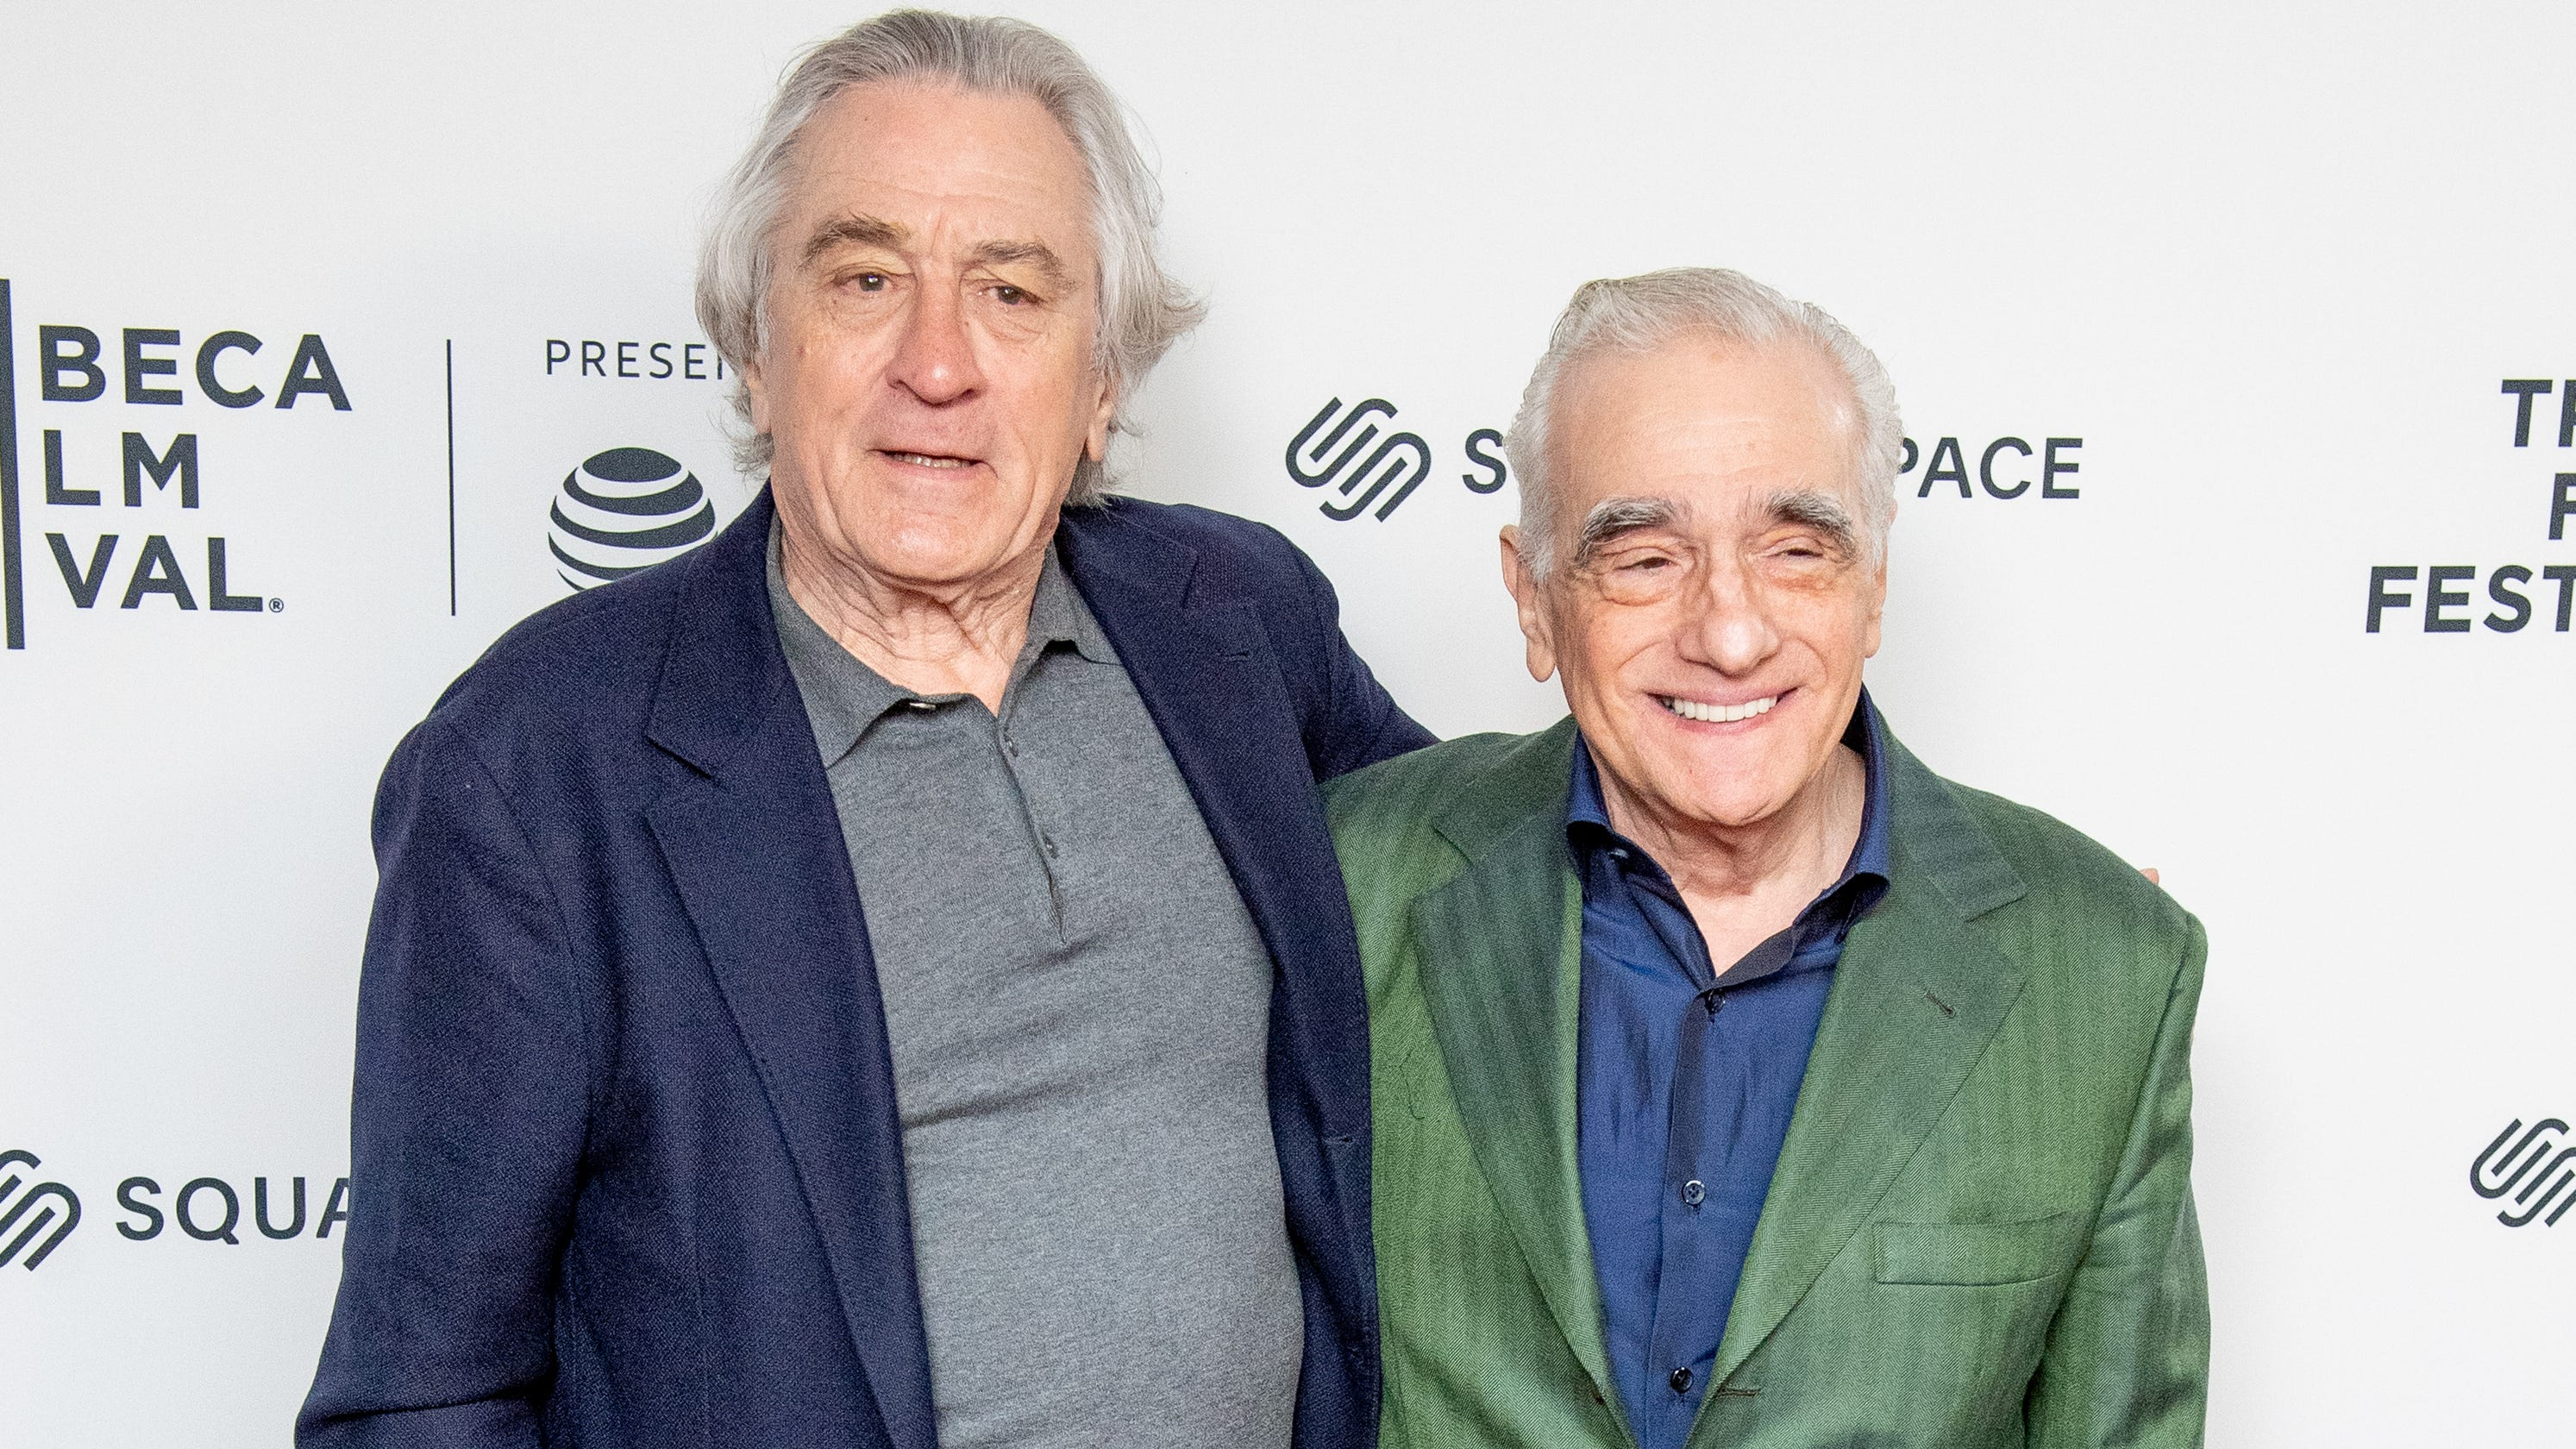 Martin Scorsese didn't care if he made another movie after 'Raging Bull': 'It wiped me out'